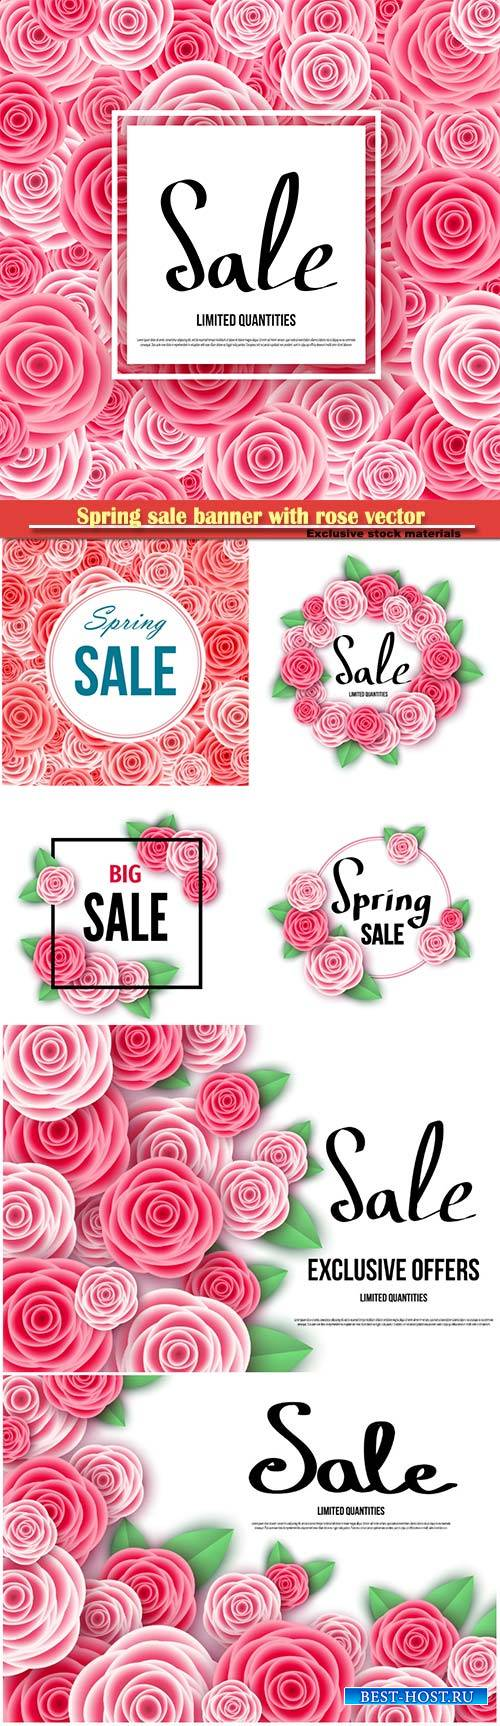 Spring sale banner with rose vector illustration